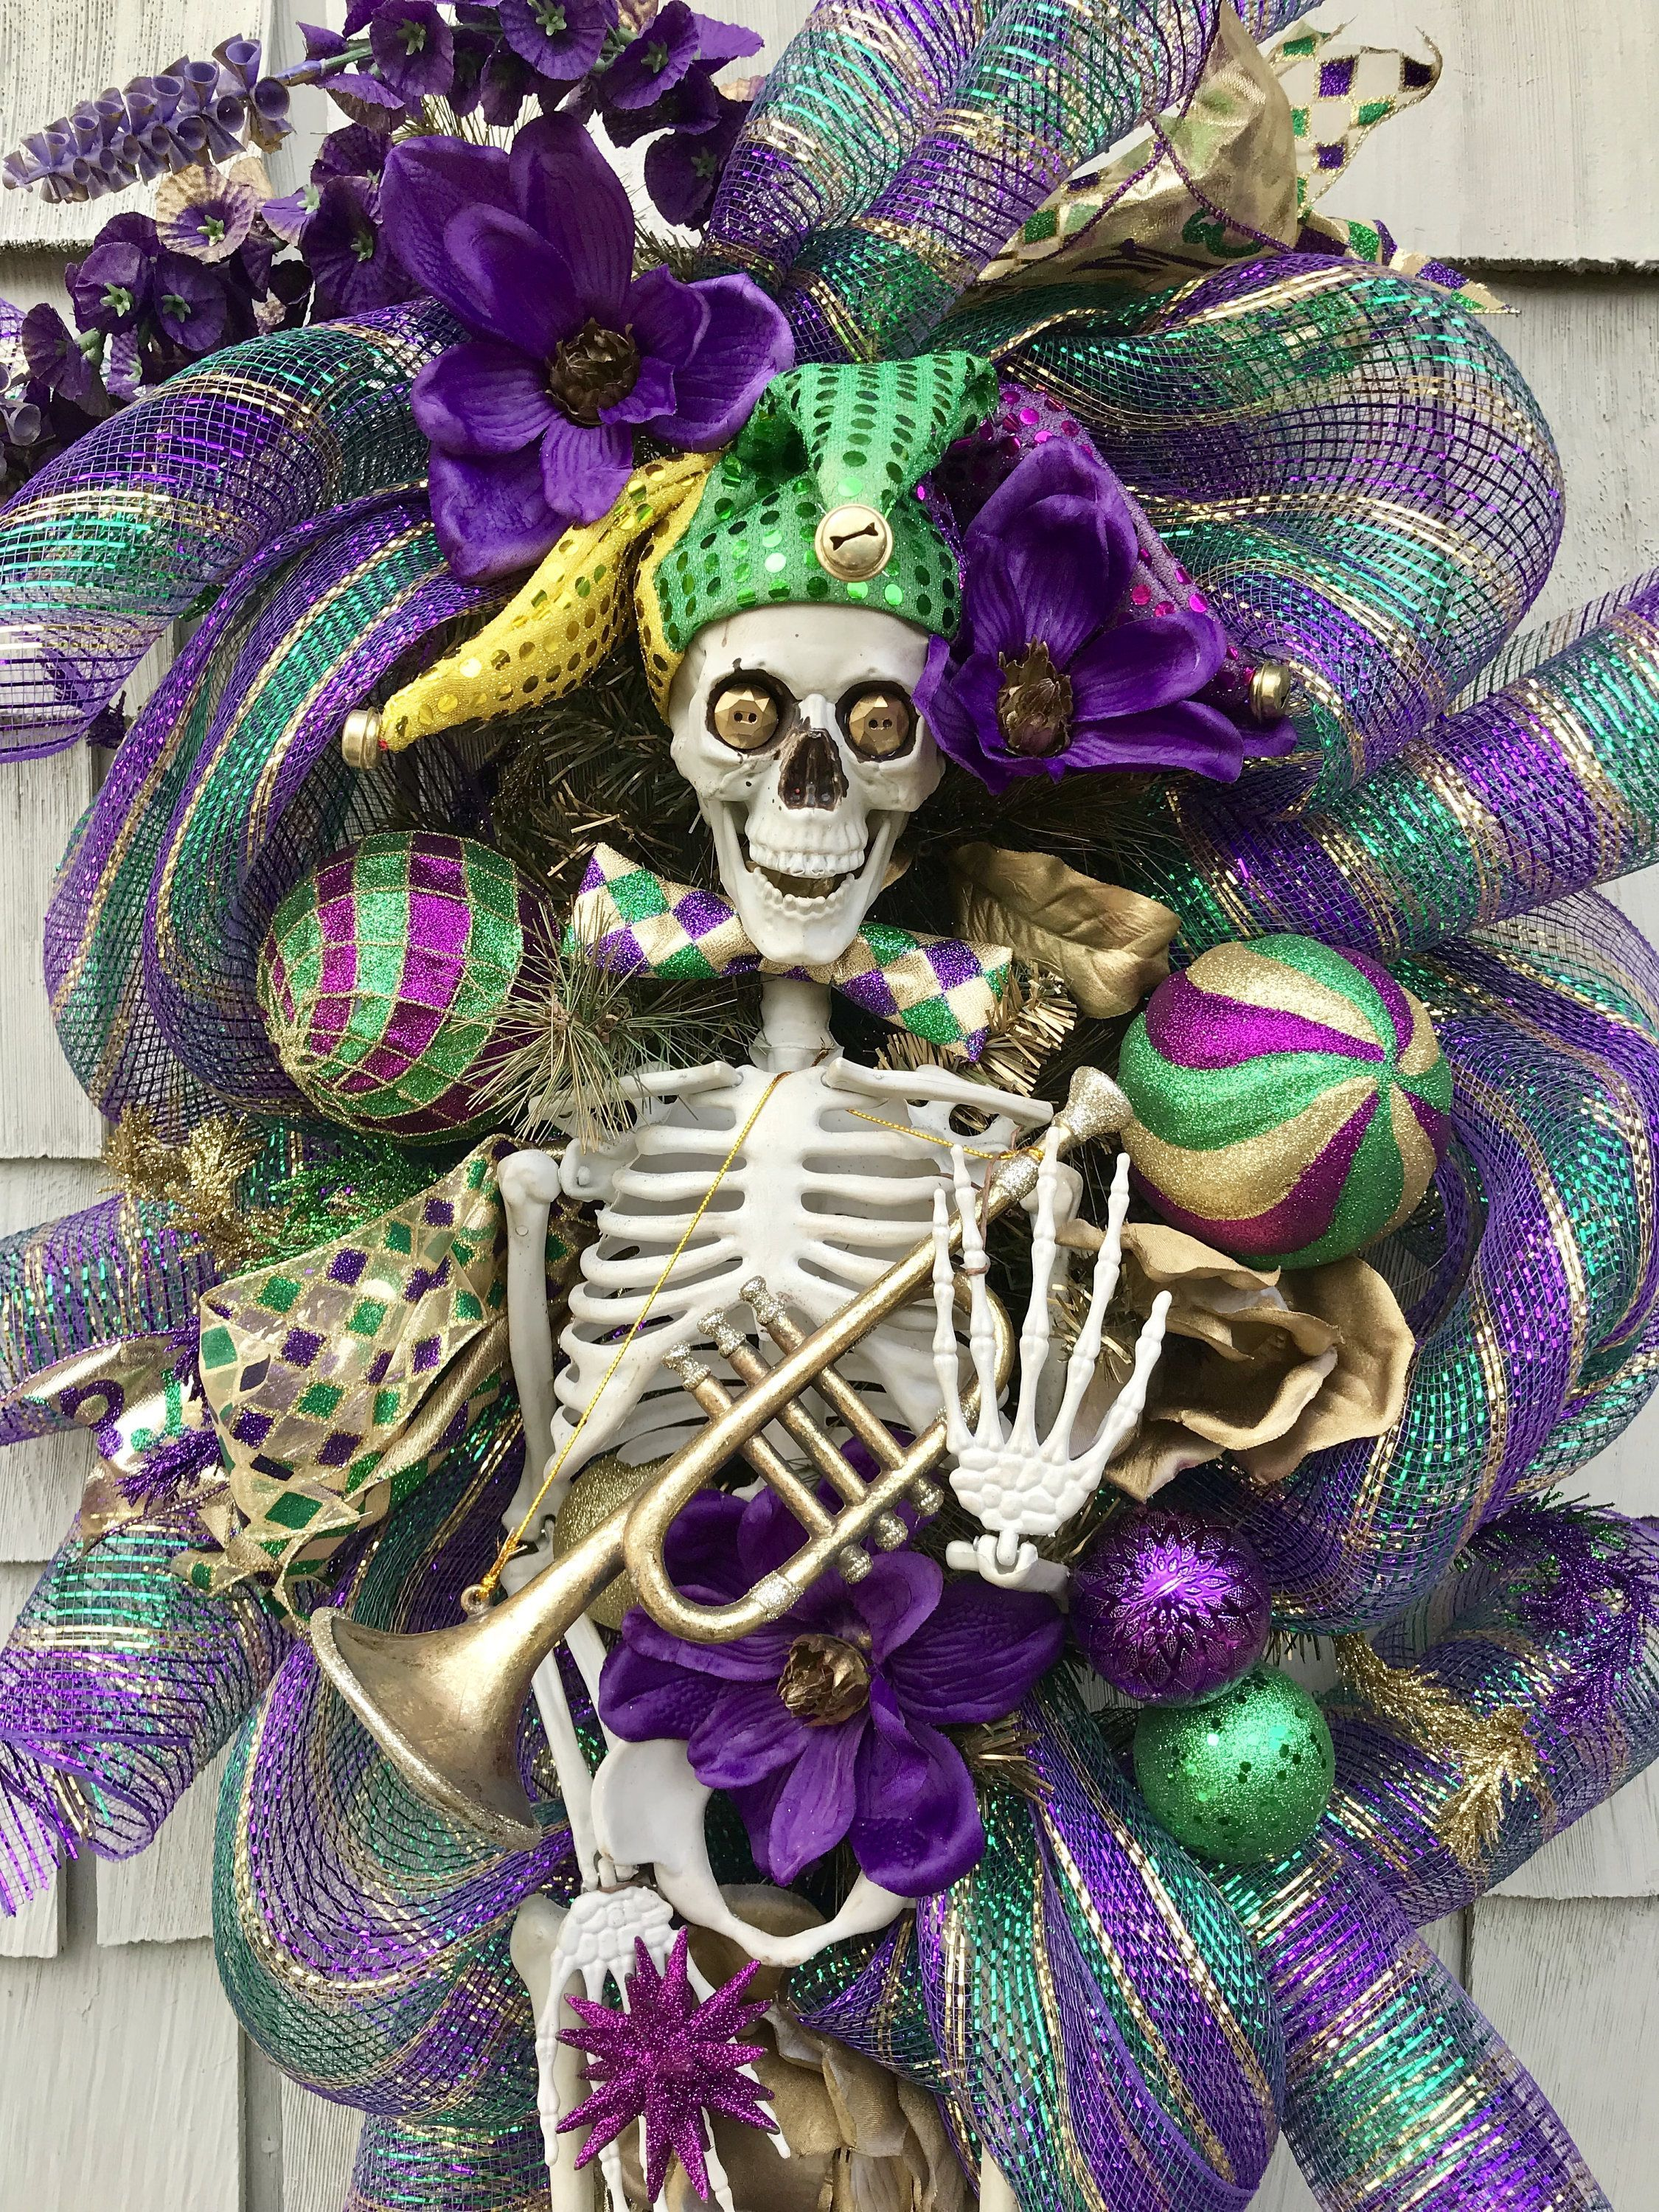 Mardi Gras Wreath Swag, XXL  Mardi Gras Skeleton, Carnival, Skeleton Crew, Purple Green Gold, Mardi Gras Decor, New Orleans Mardi Gras Party -   - #carnival #Crew #decor #Gold #Gras #green #mardi #mardigrascenterpieces #Mardigrascostume #Mardigrascrafts #Mardigrasdecorations #Mardigrasfood #Mardigrasneworleans #Mardigrasoutfit #Mardigrasparty #orleans #party #purple #skeleton #Swag #wreath #XXL